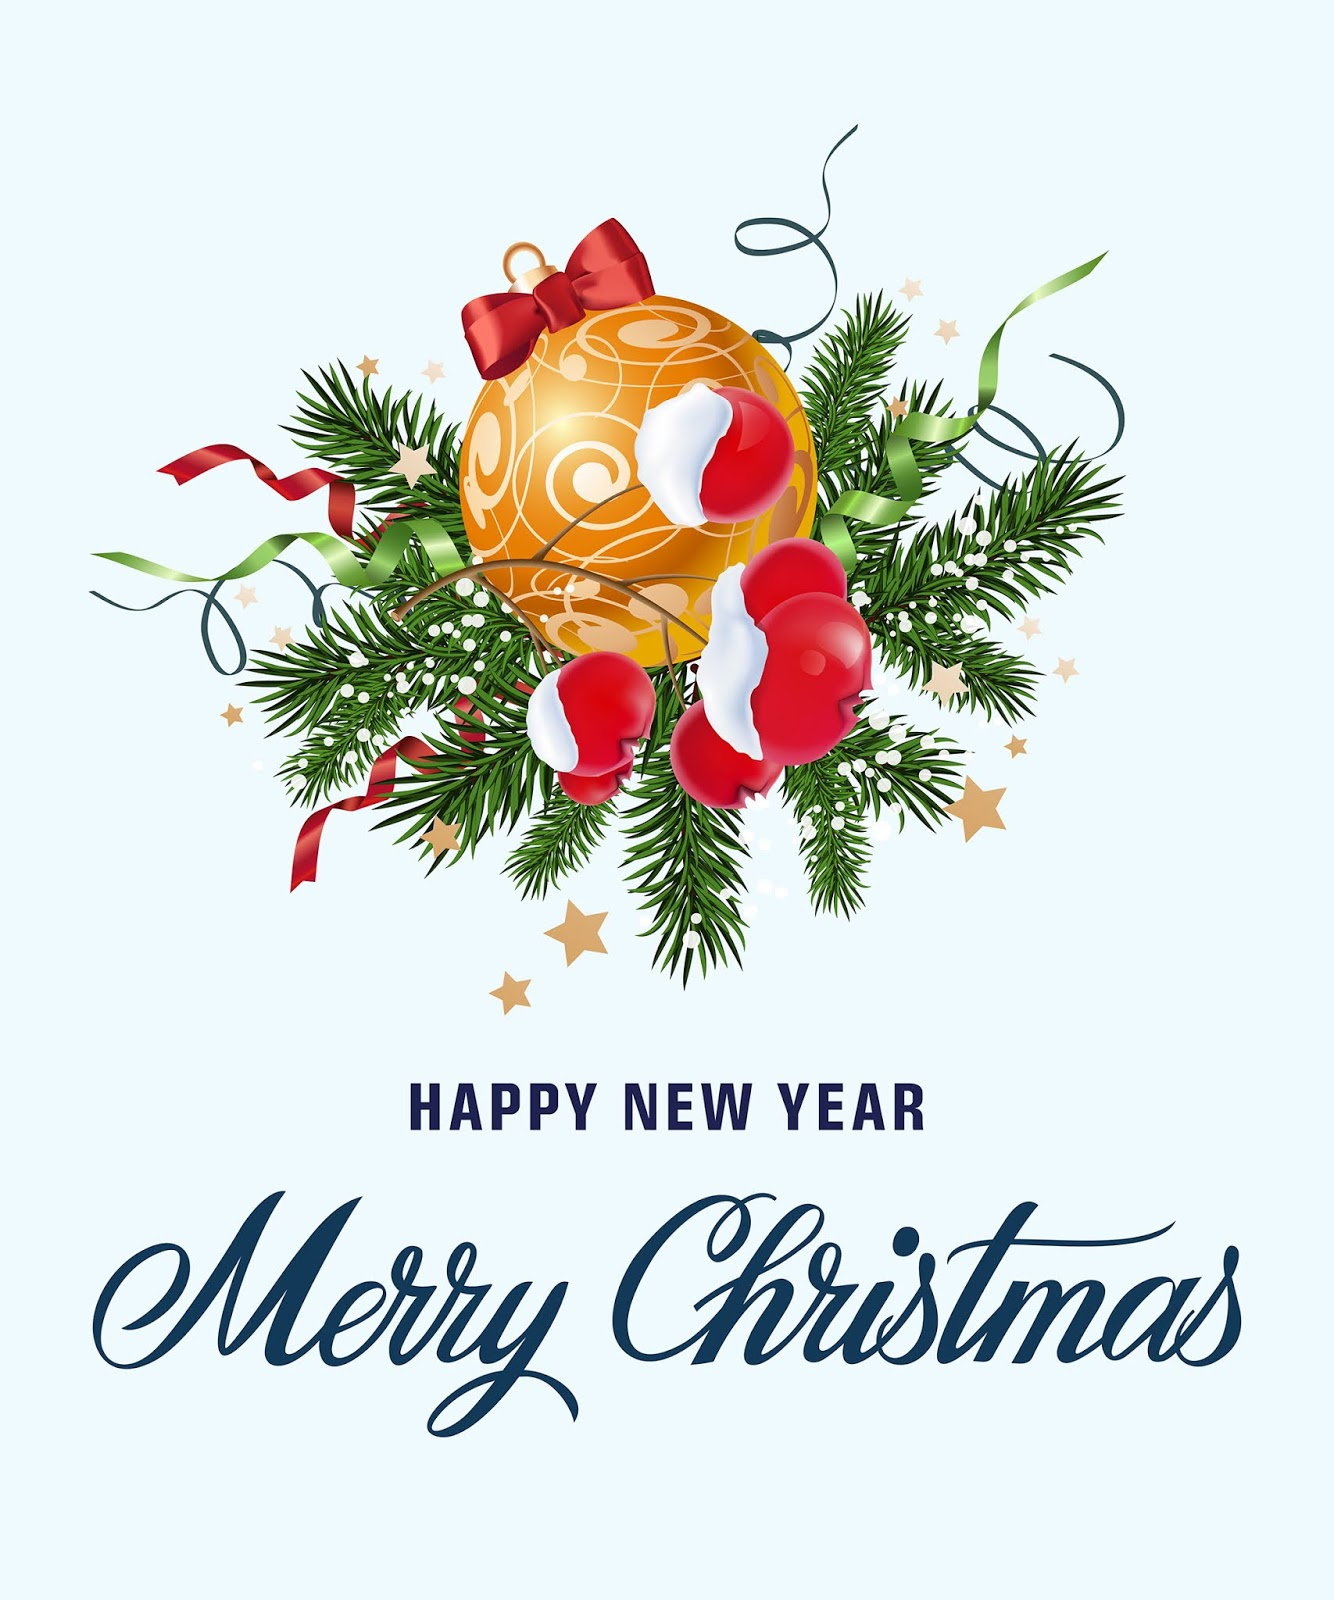 Greeting Lettering Bauble Mistletoe Free Download Vector CDR, AI, EPS and PNG Formats